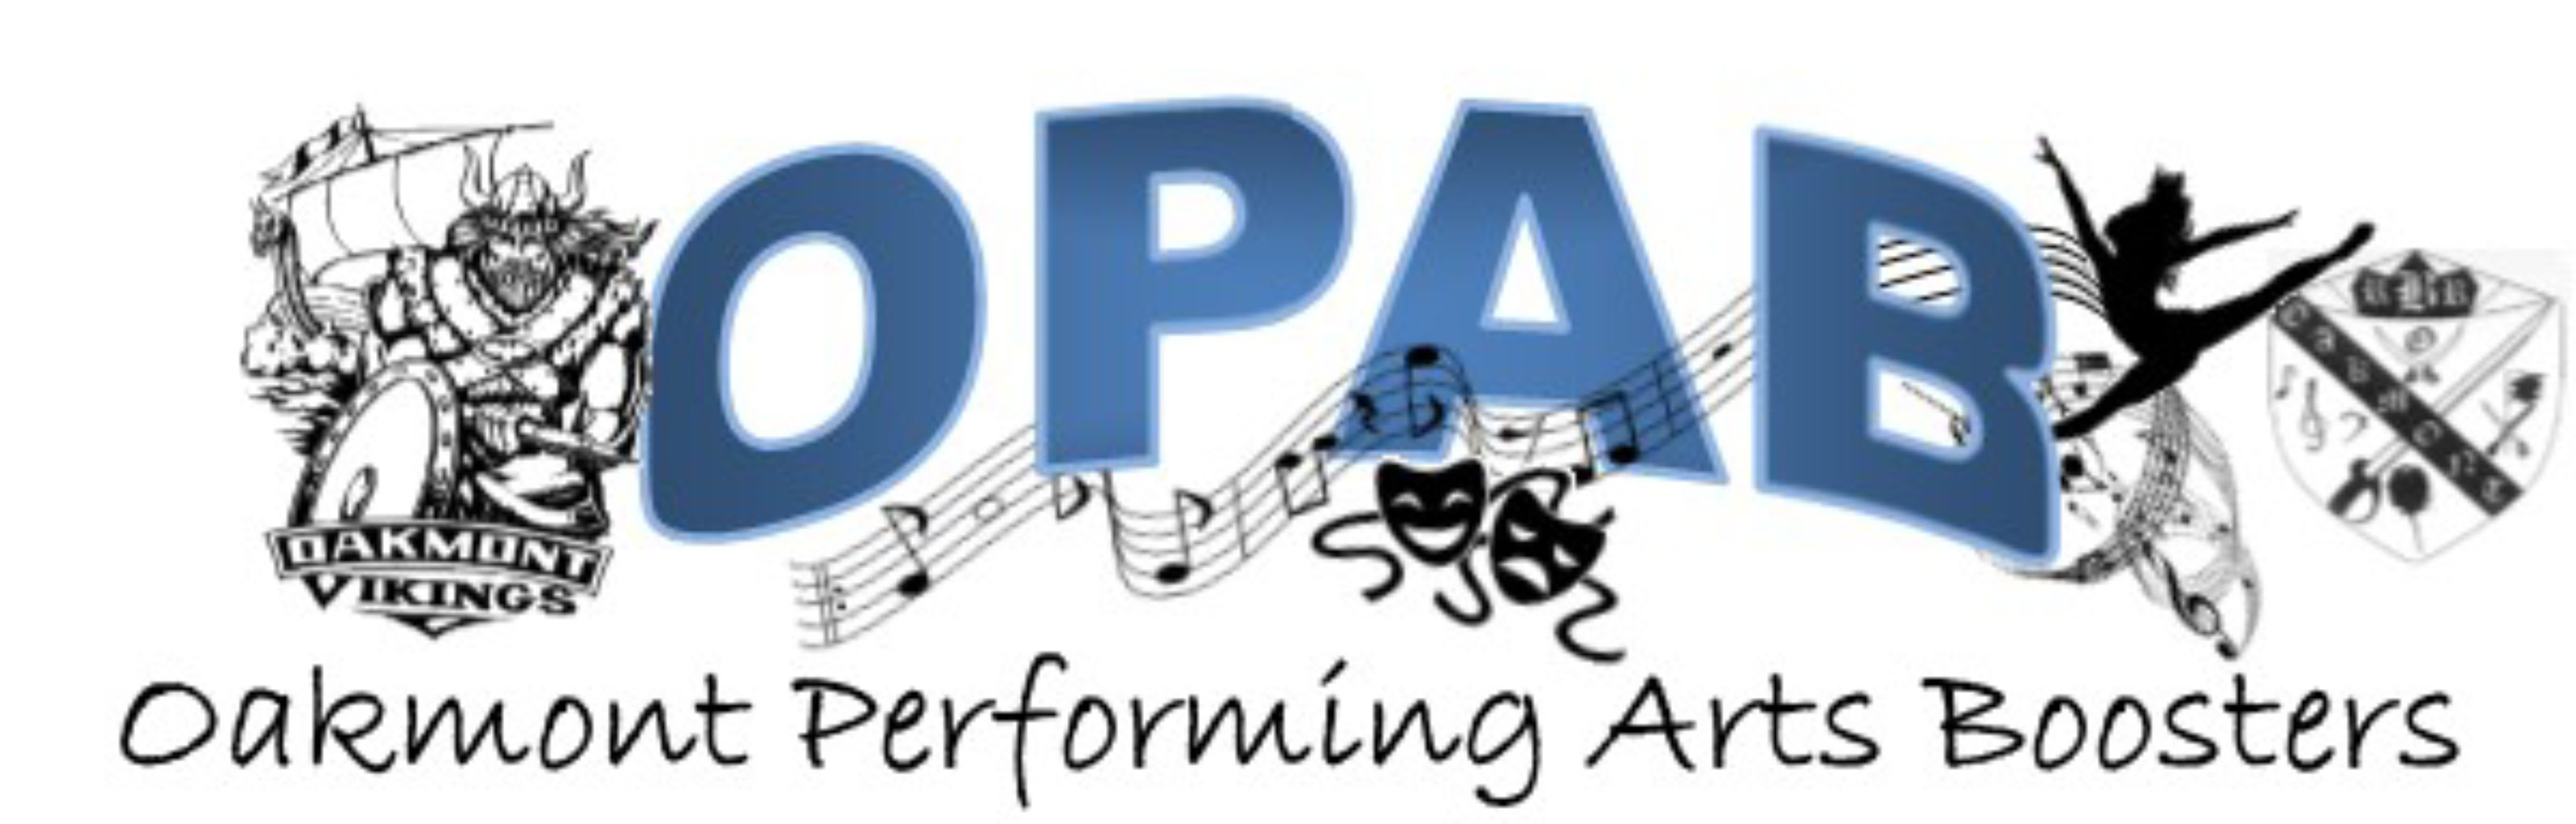 Oakmont Performing Arts Boosters